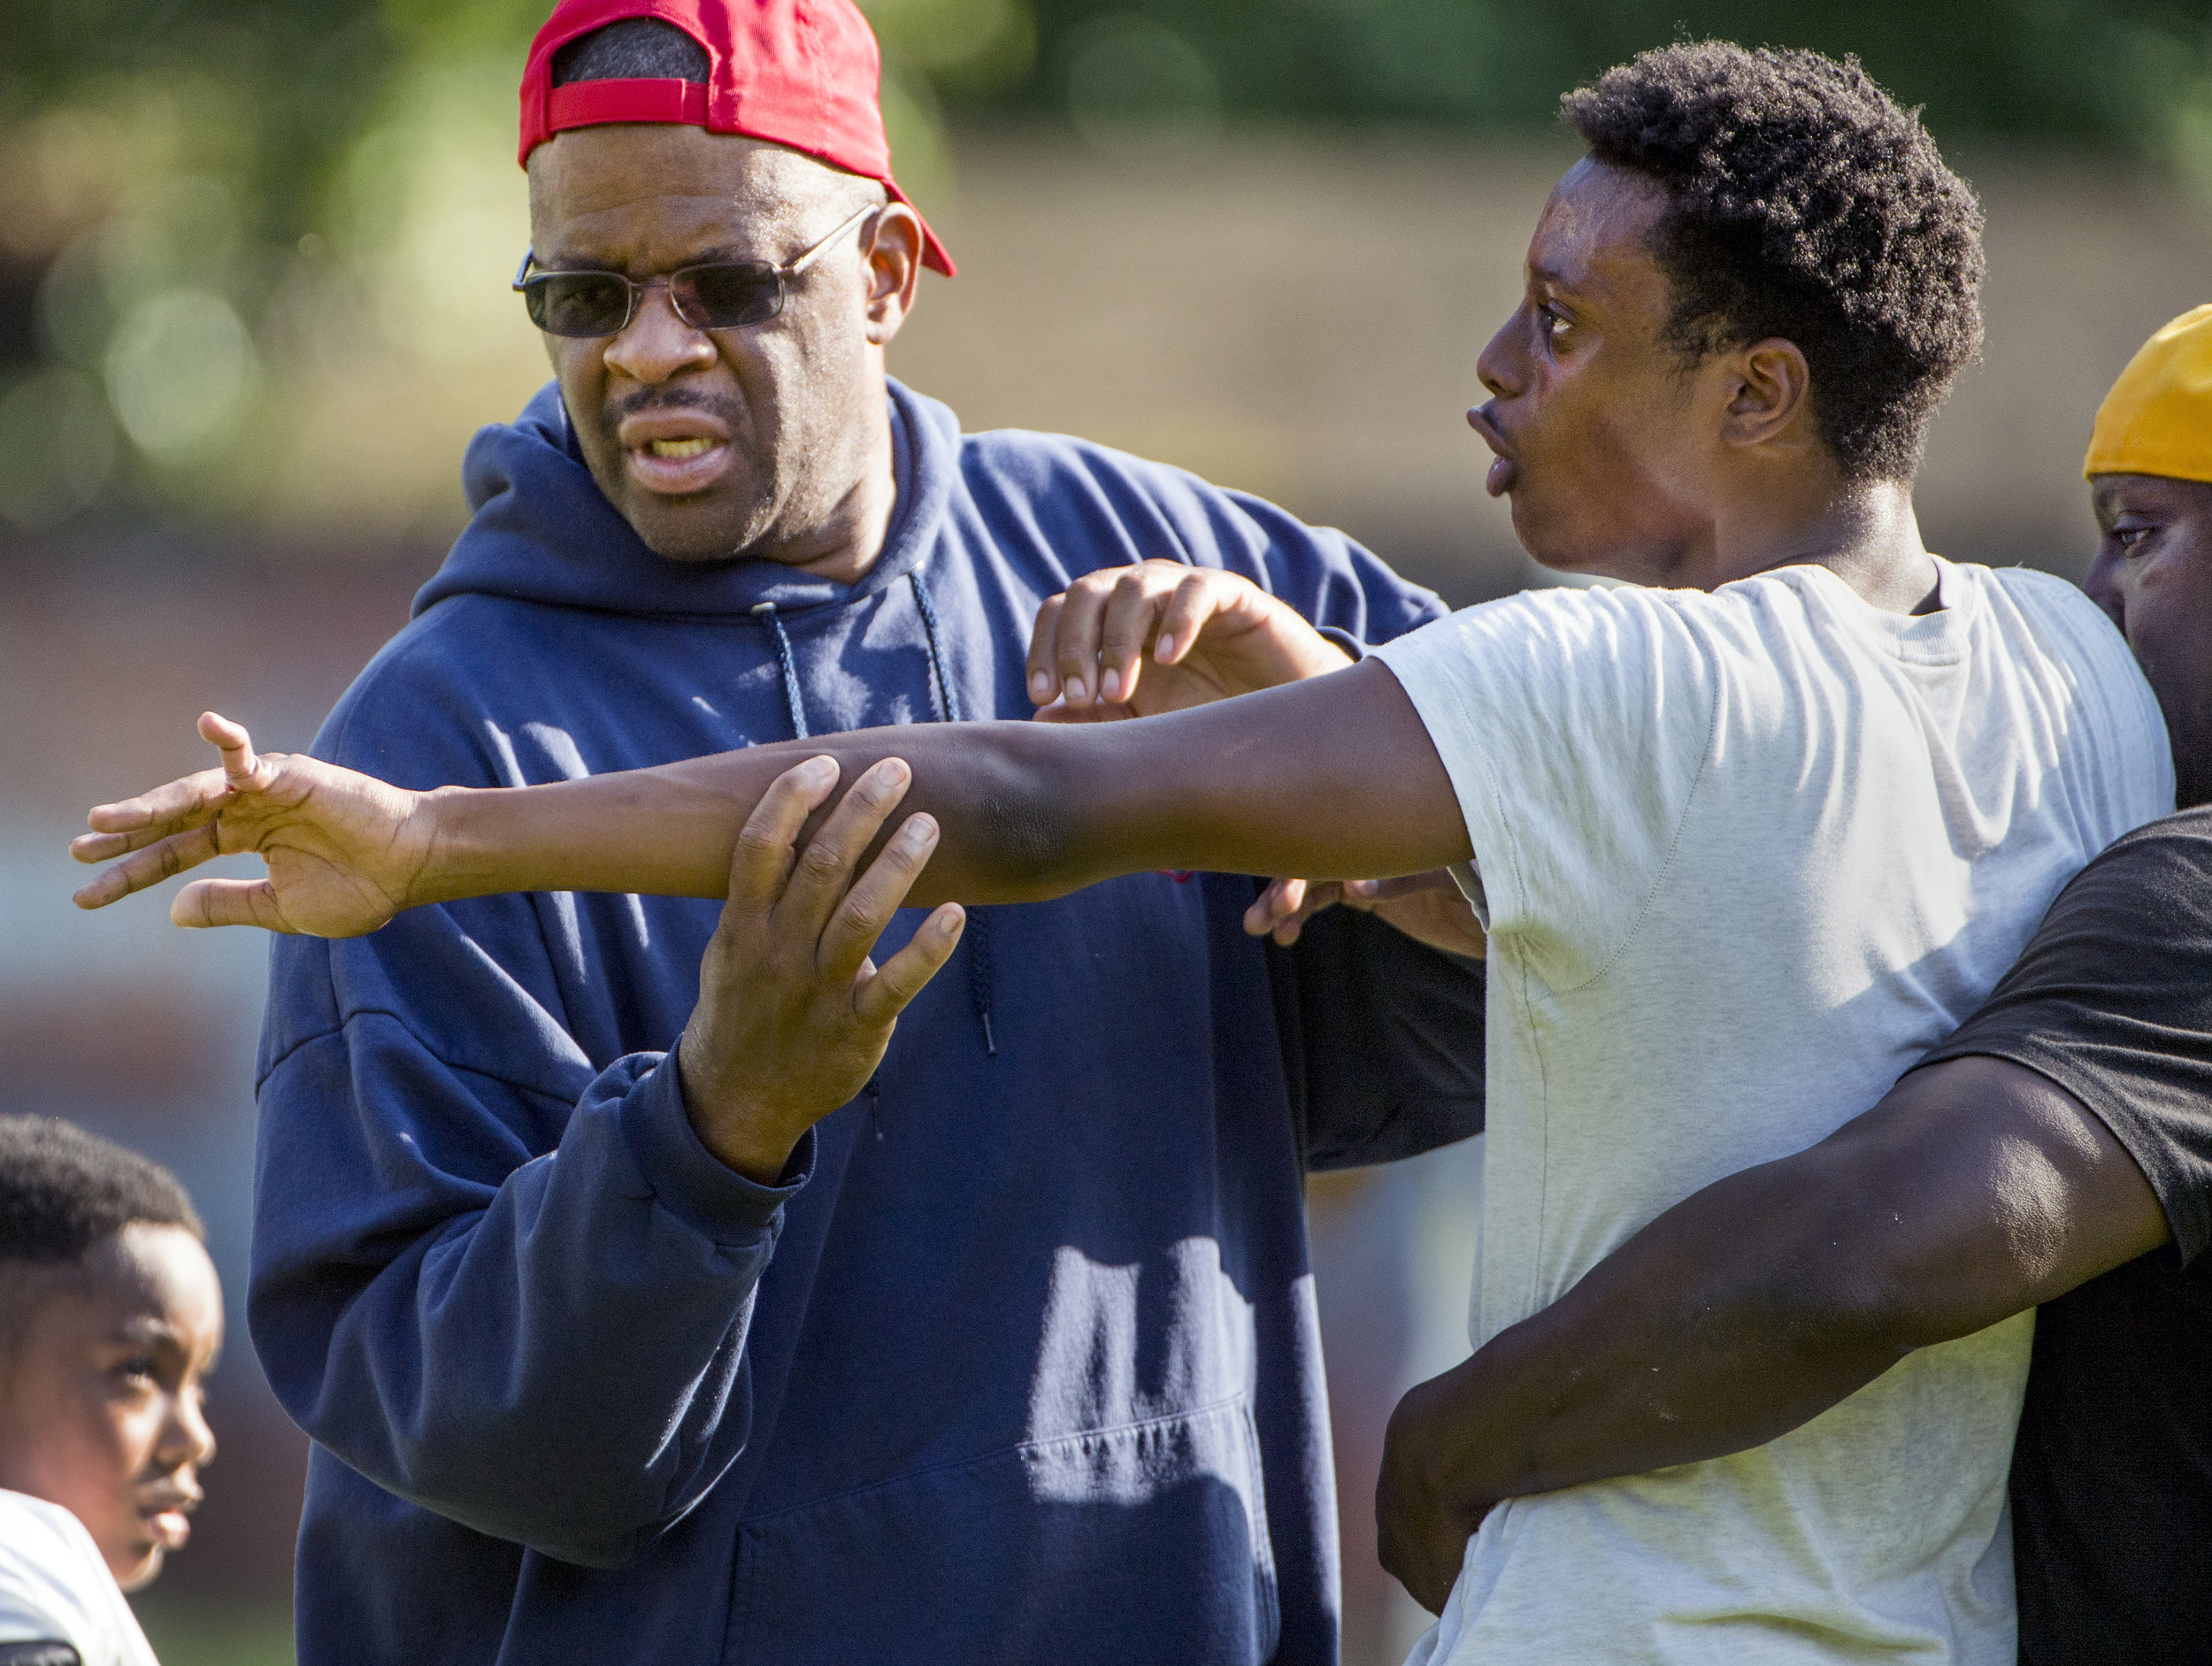 2017 TAB Westinghouse football coaches Eric Pennington and Ramon Robinson console Tariq Hamilton after he broke his finger catching ball during a preseason practice on Thursday, Aug. 3, 2017 at Westinghouse High School. (Steph Chambers/Post-Gazette)